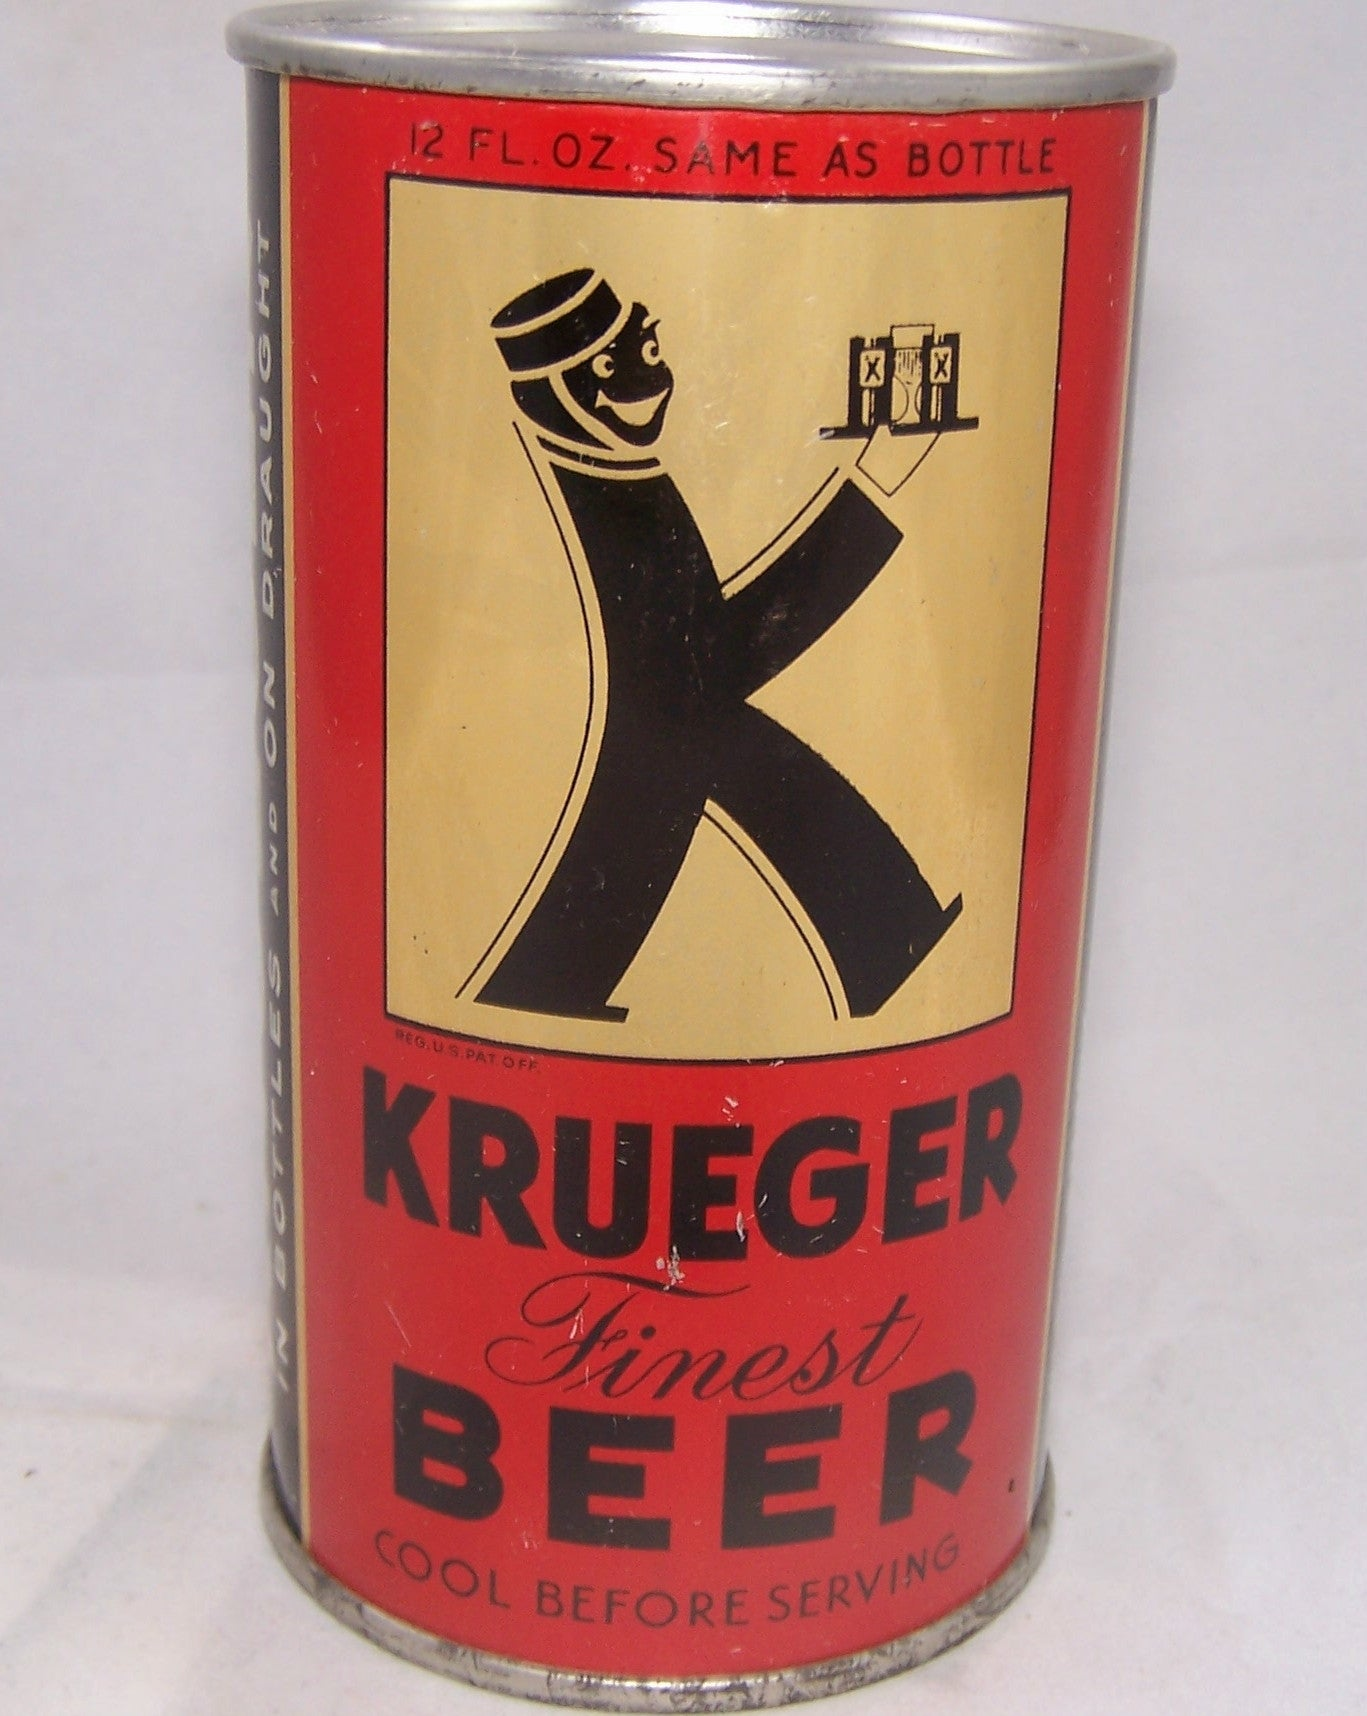 Krueger Finest Beer, Lilek # 483, Grade 1 to 1/1+ Sold on 09/28/16